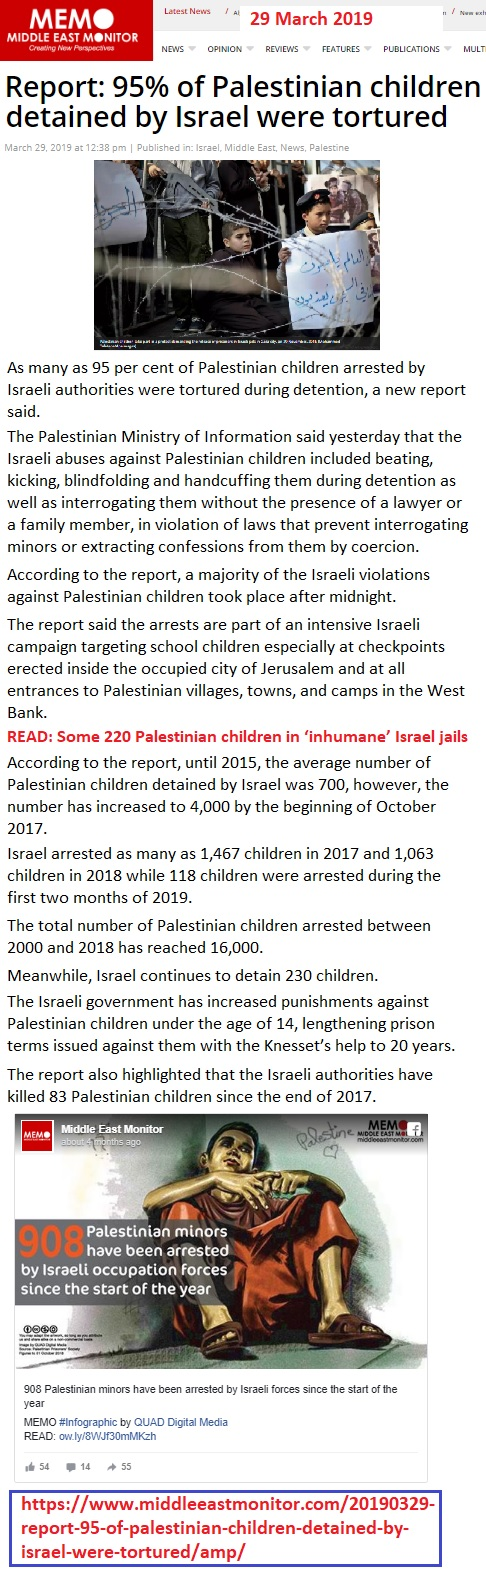 https://www.middleeastmonitor.com/20190329-report-95-of-palestinian-children-detained-by-israel-were-tortured/